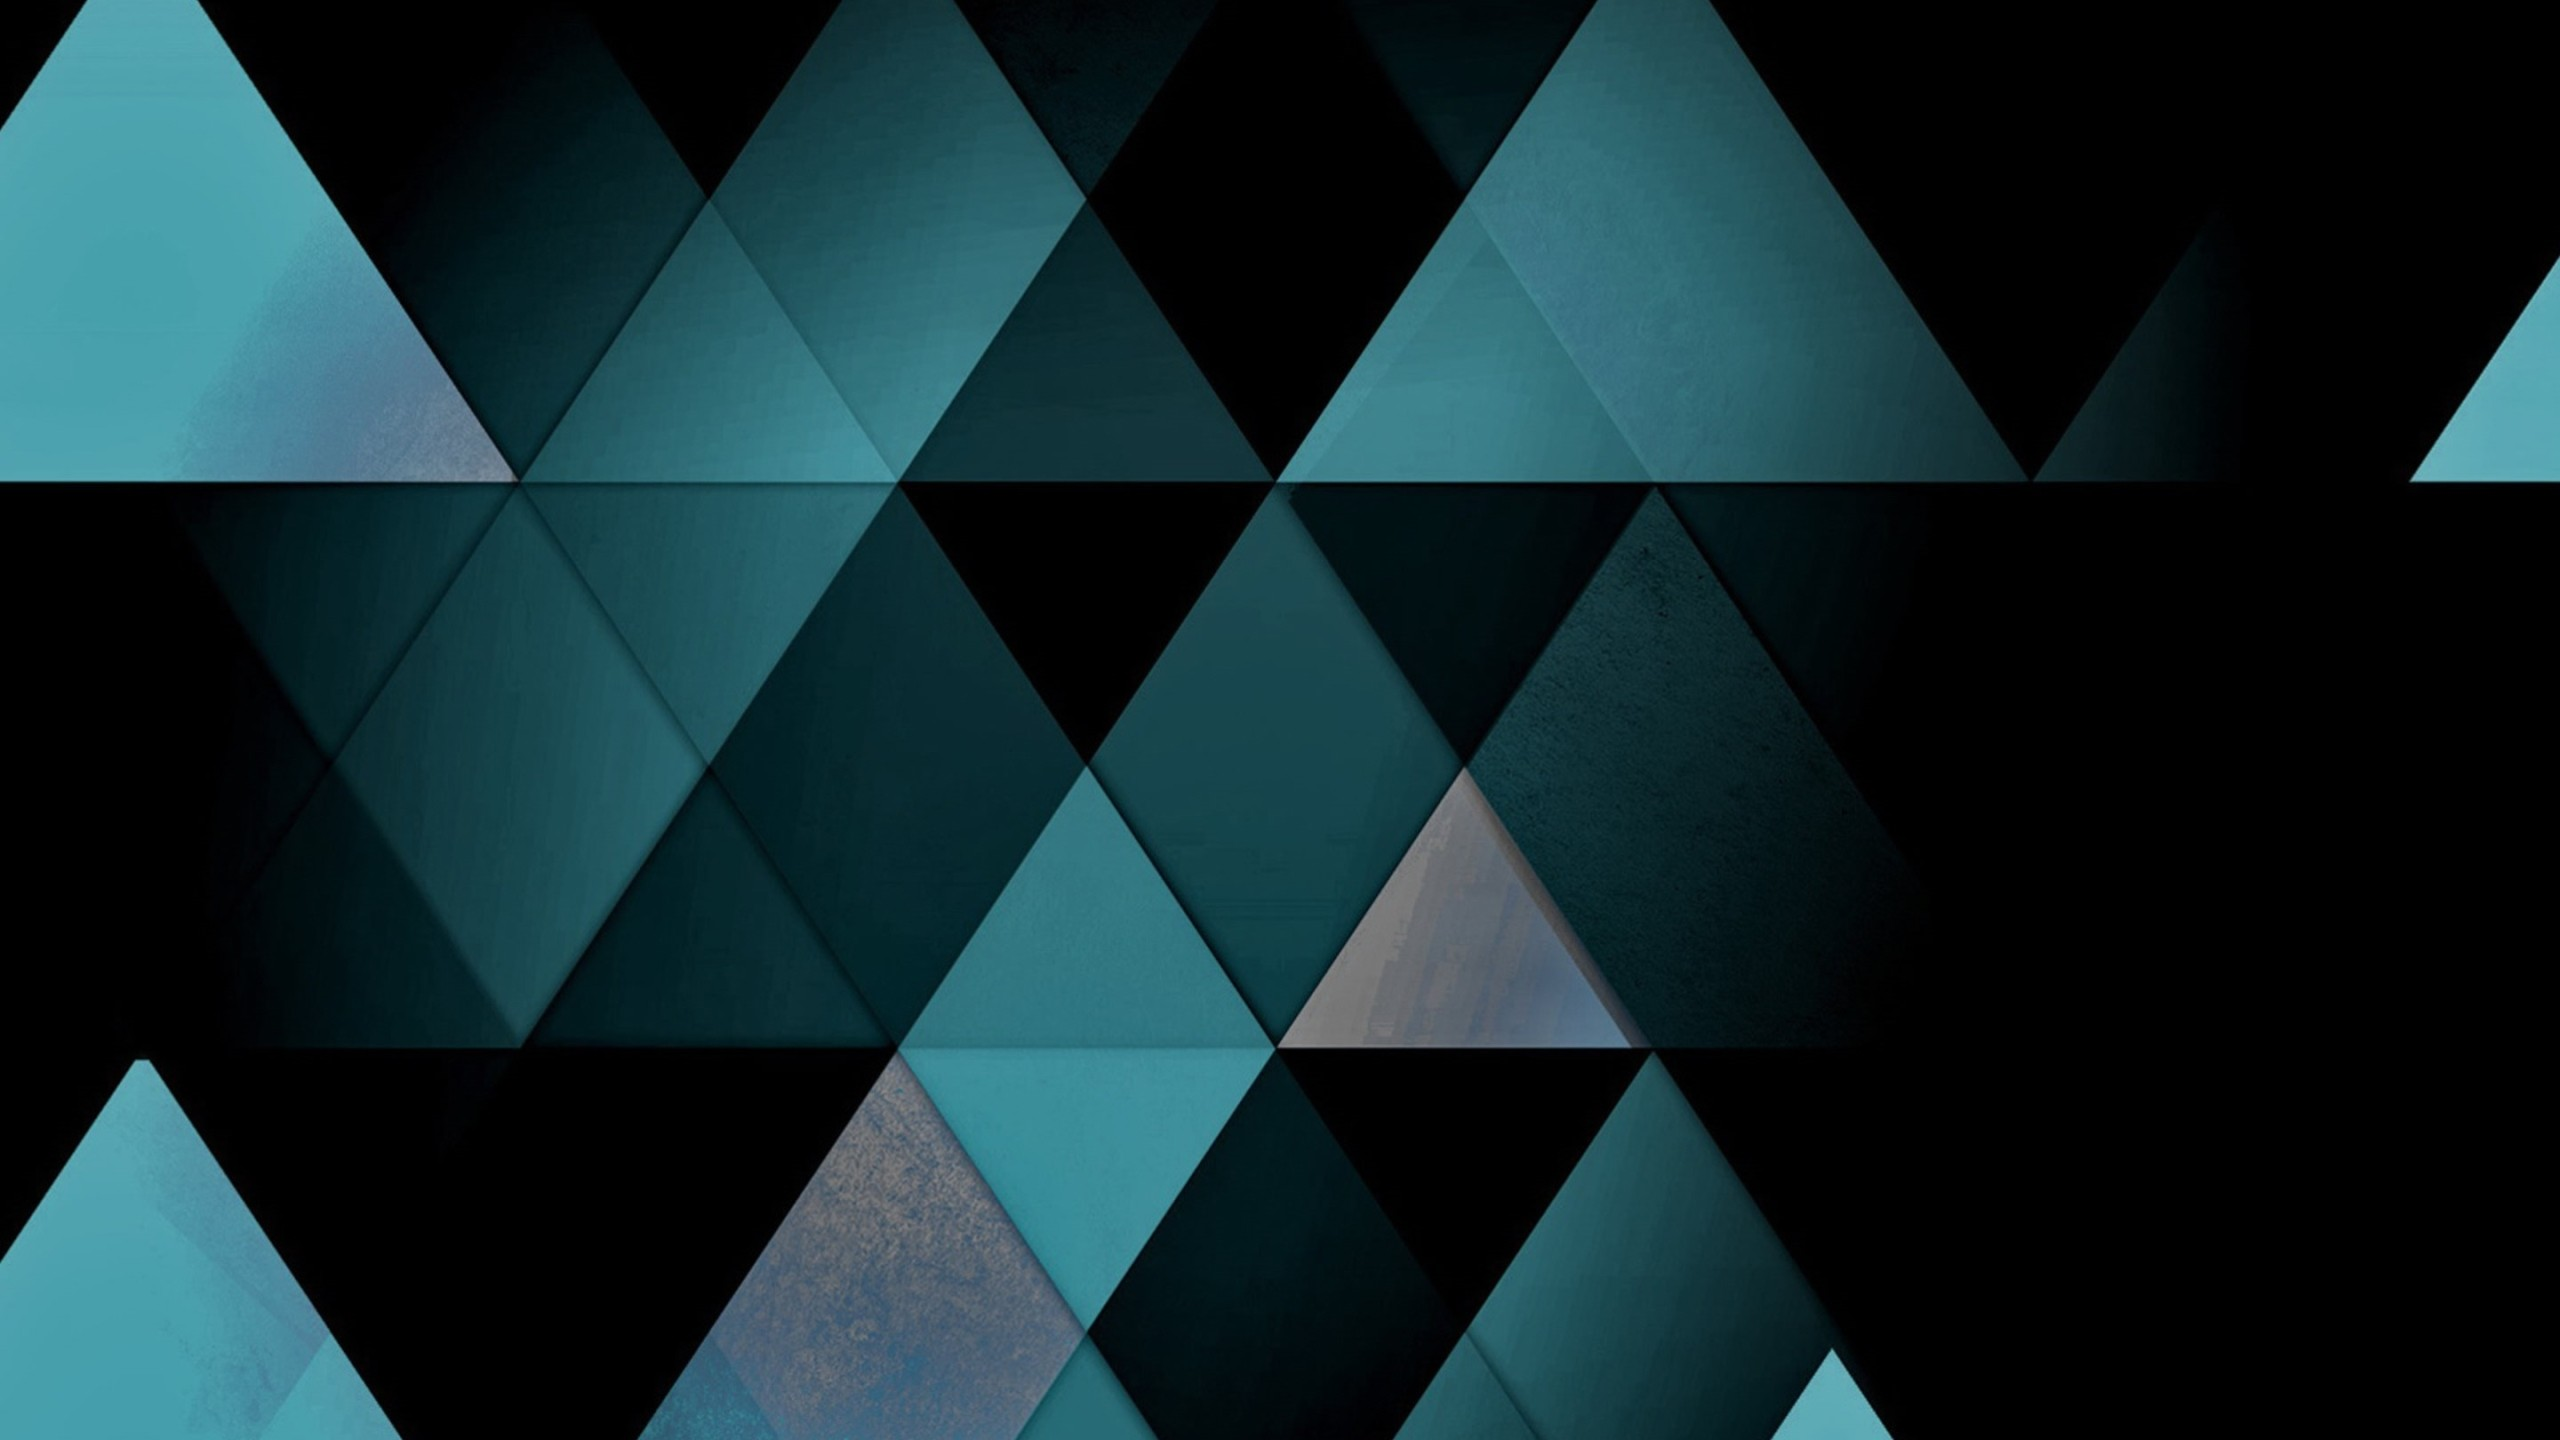 Sky Blue Ombre Painted Dresser furthermore Cool Tribal Nail Art Designs furthermore Arcticgranite together with Freevector Skater Background Template moreover Shape Shape E An Element Of Visual Arts B A Closed Space Made When A Line Connects To Itself. on lines shapes and designs